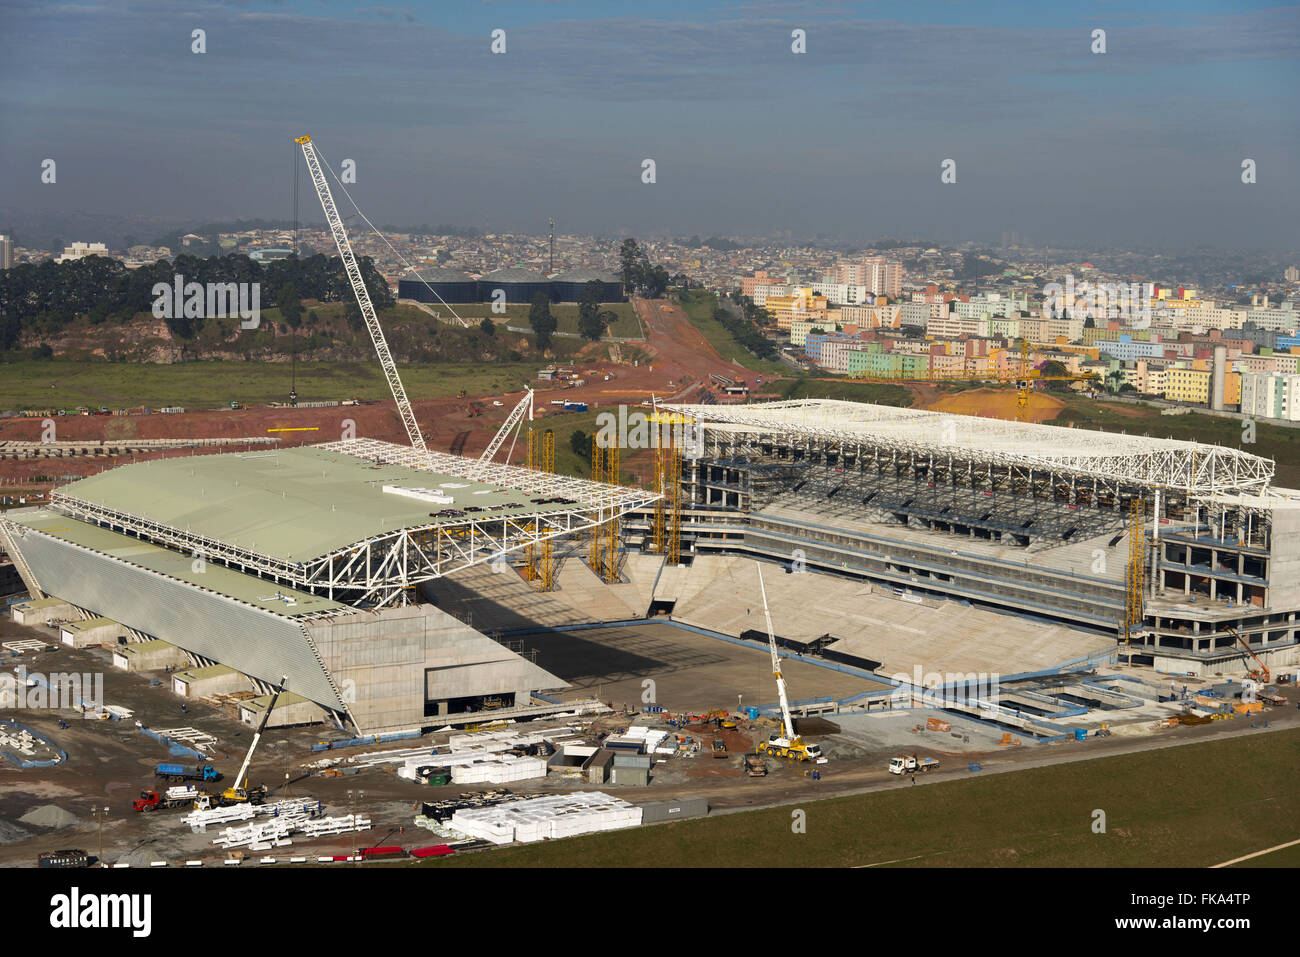 Aerial view of the construction work of the Corinthians stadium Arena with housing right - Stock Image